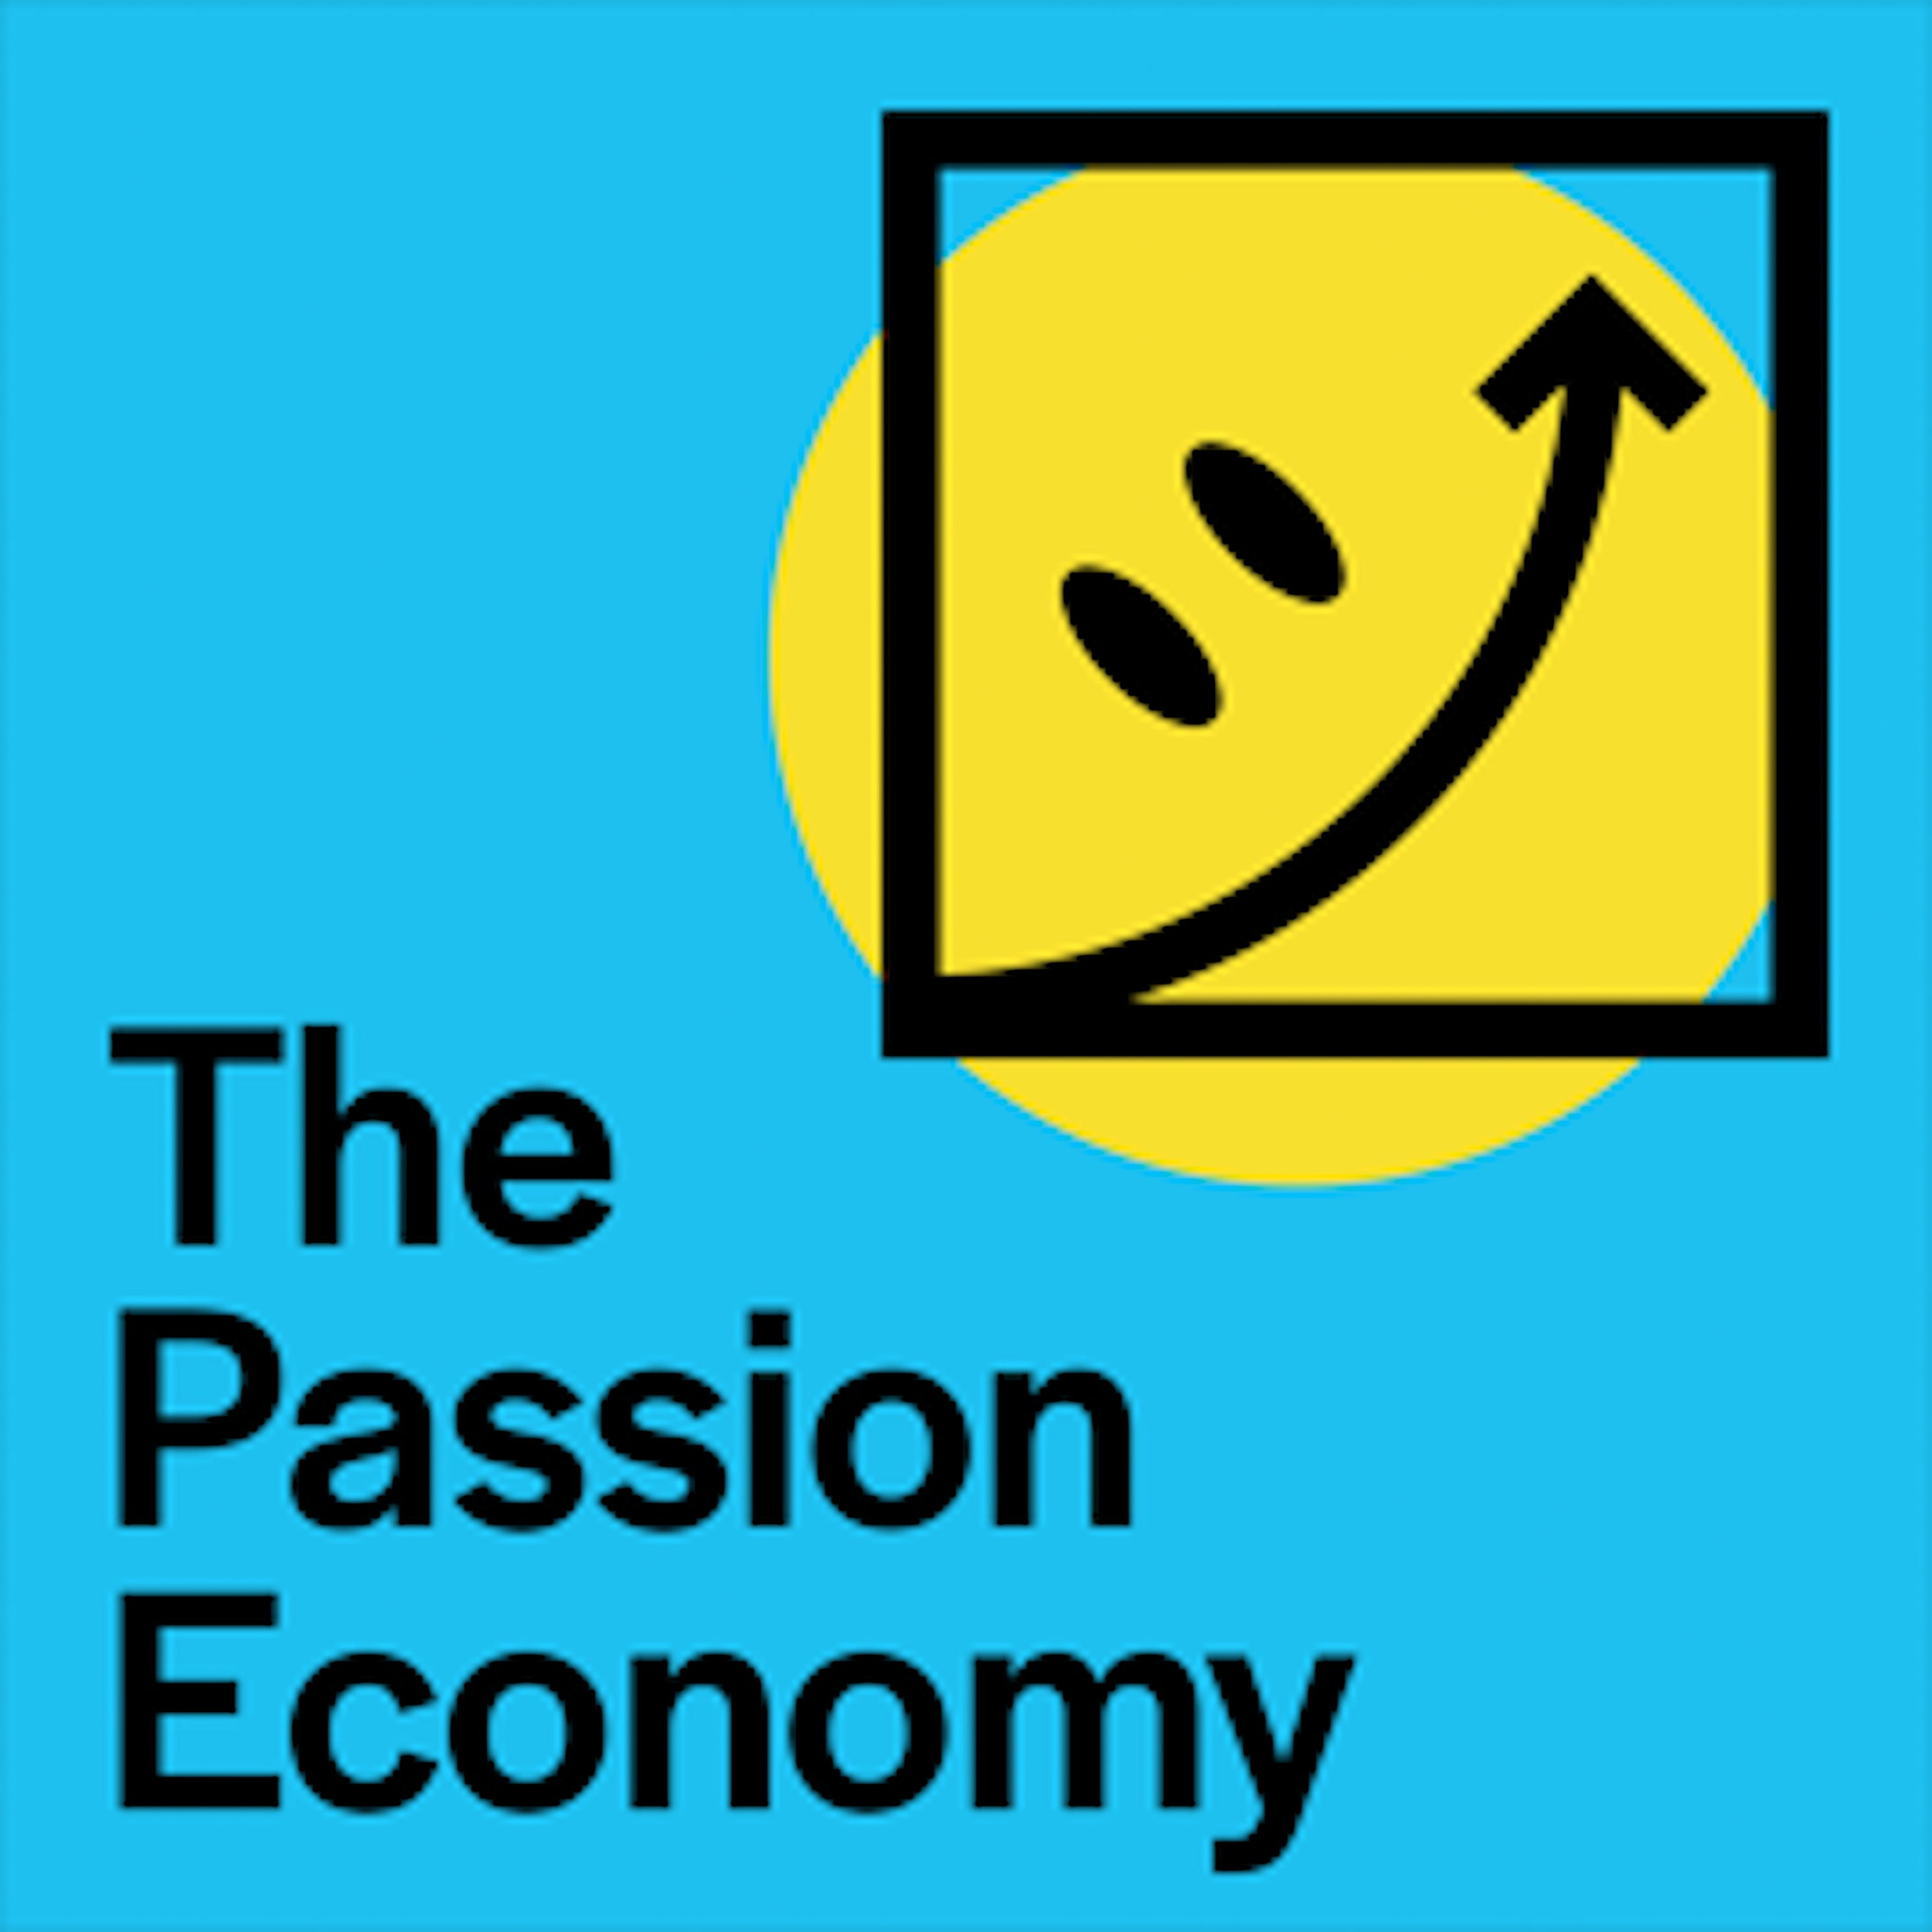 Introducing... The Passion Economy!